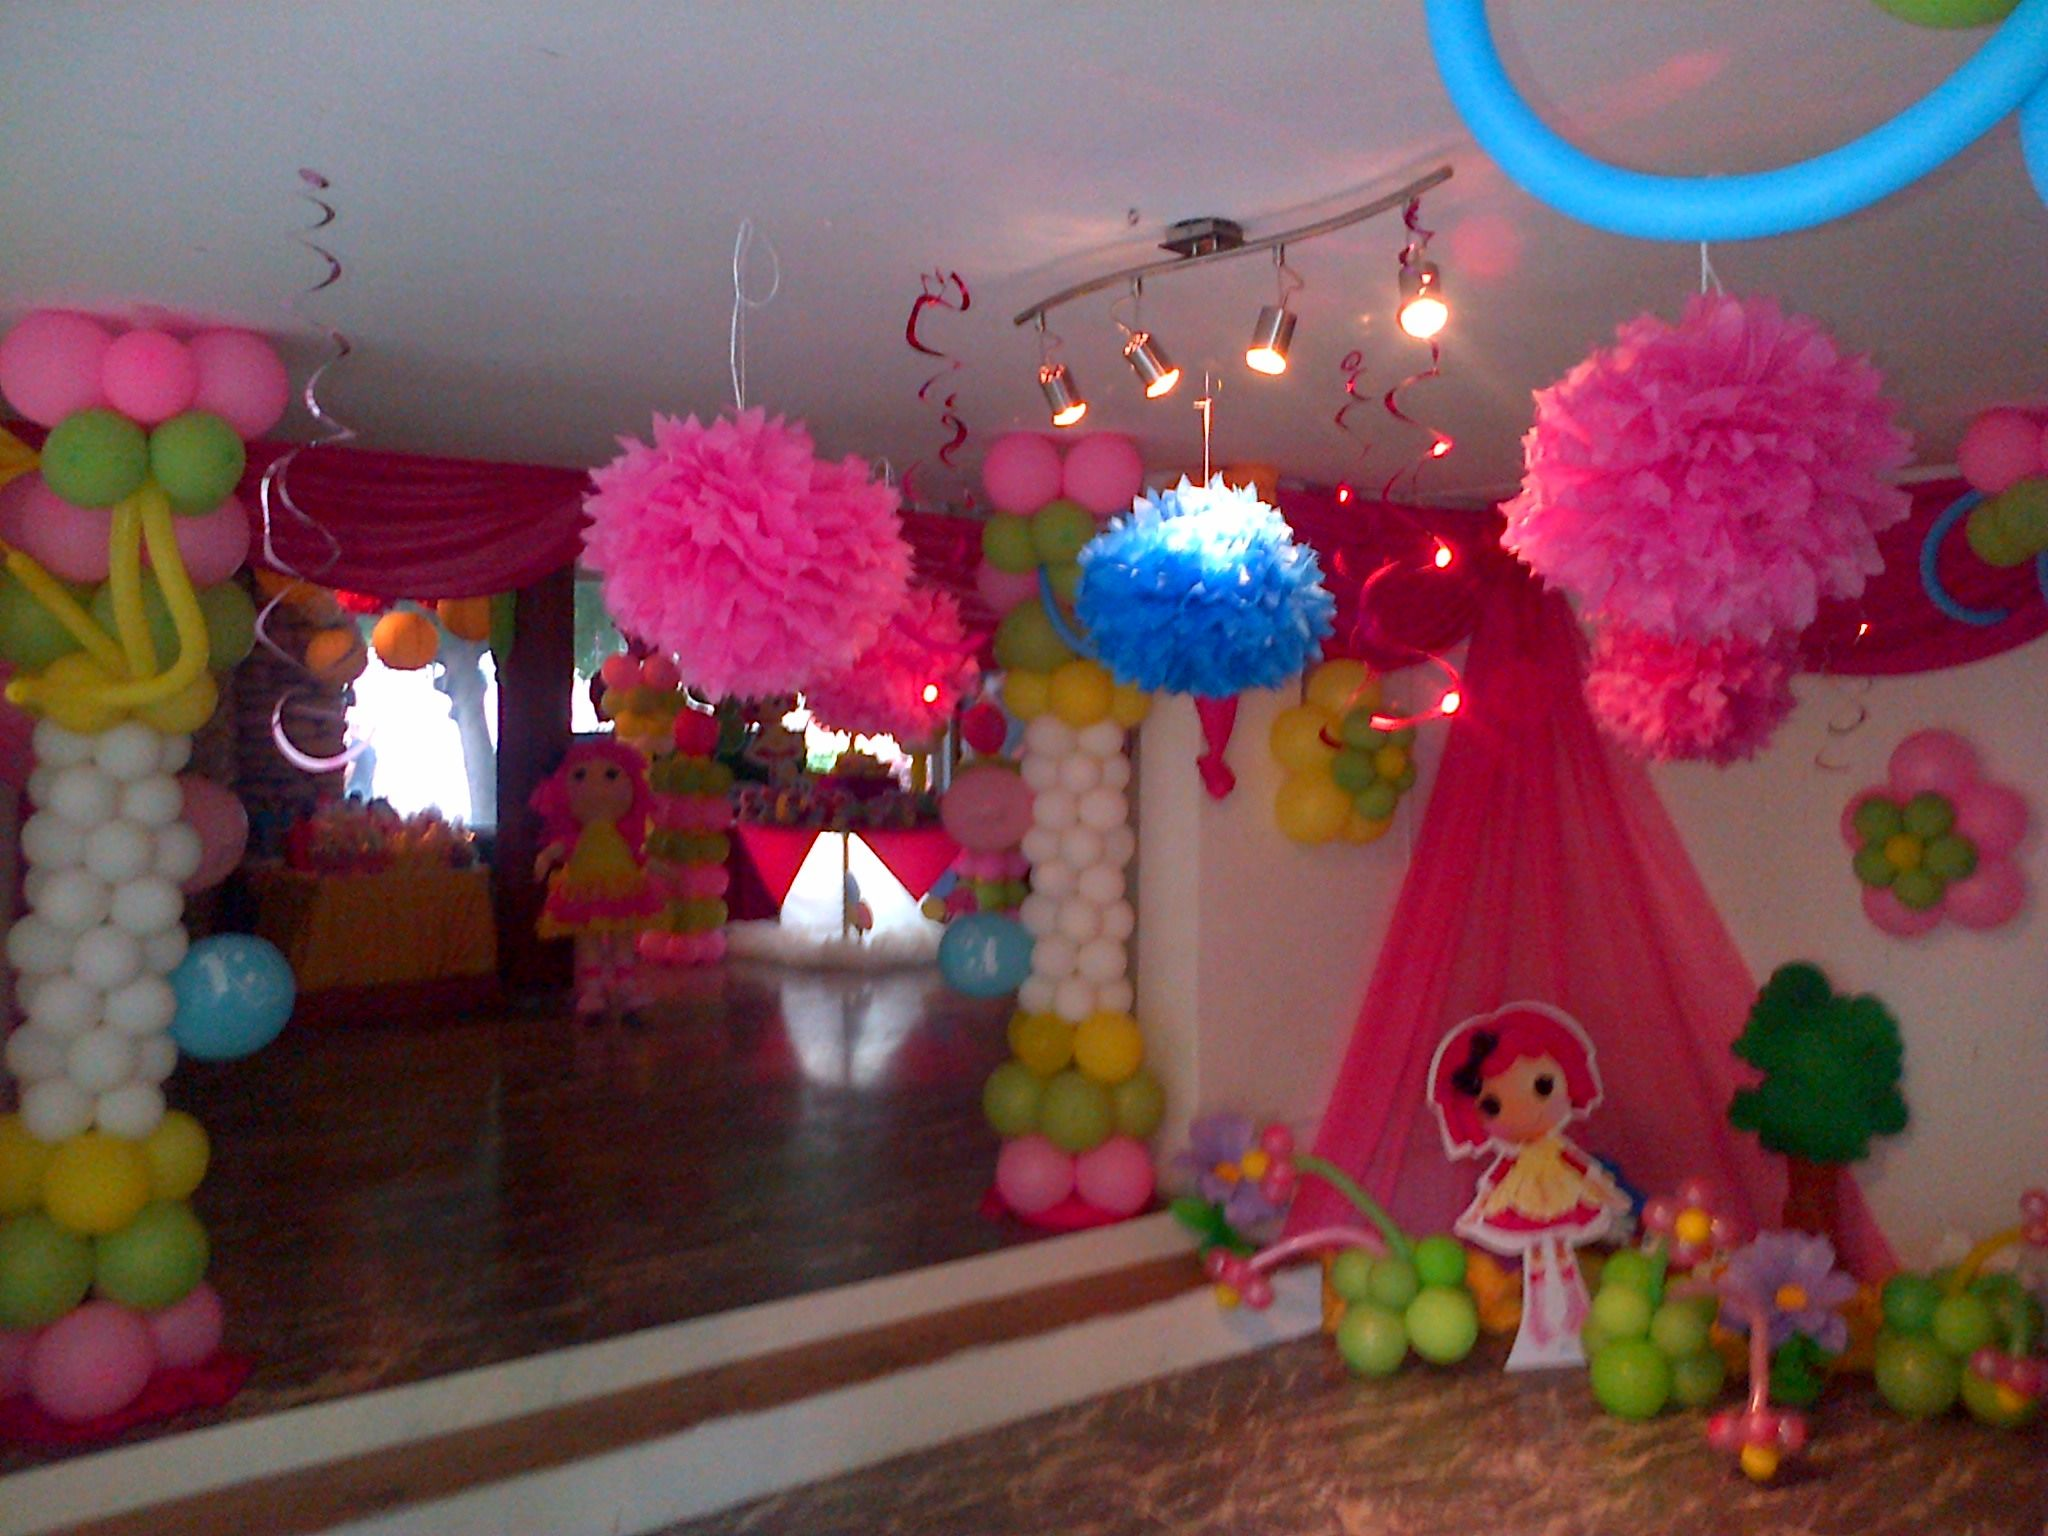 Lalaloopsy Bedroom Decor 17 Best Images About Lalaloopsy On Pinterest Mesas Balloon Arch